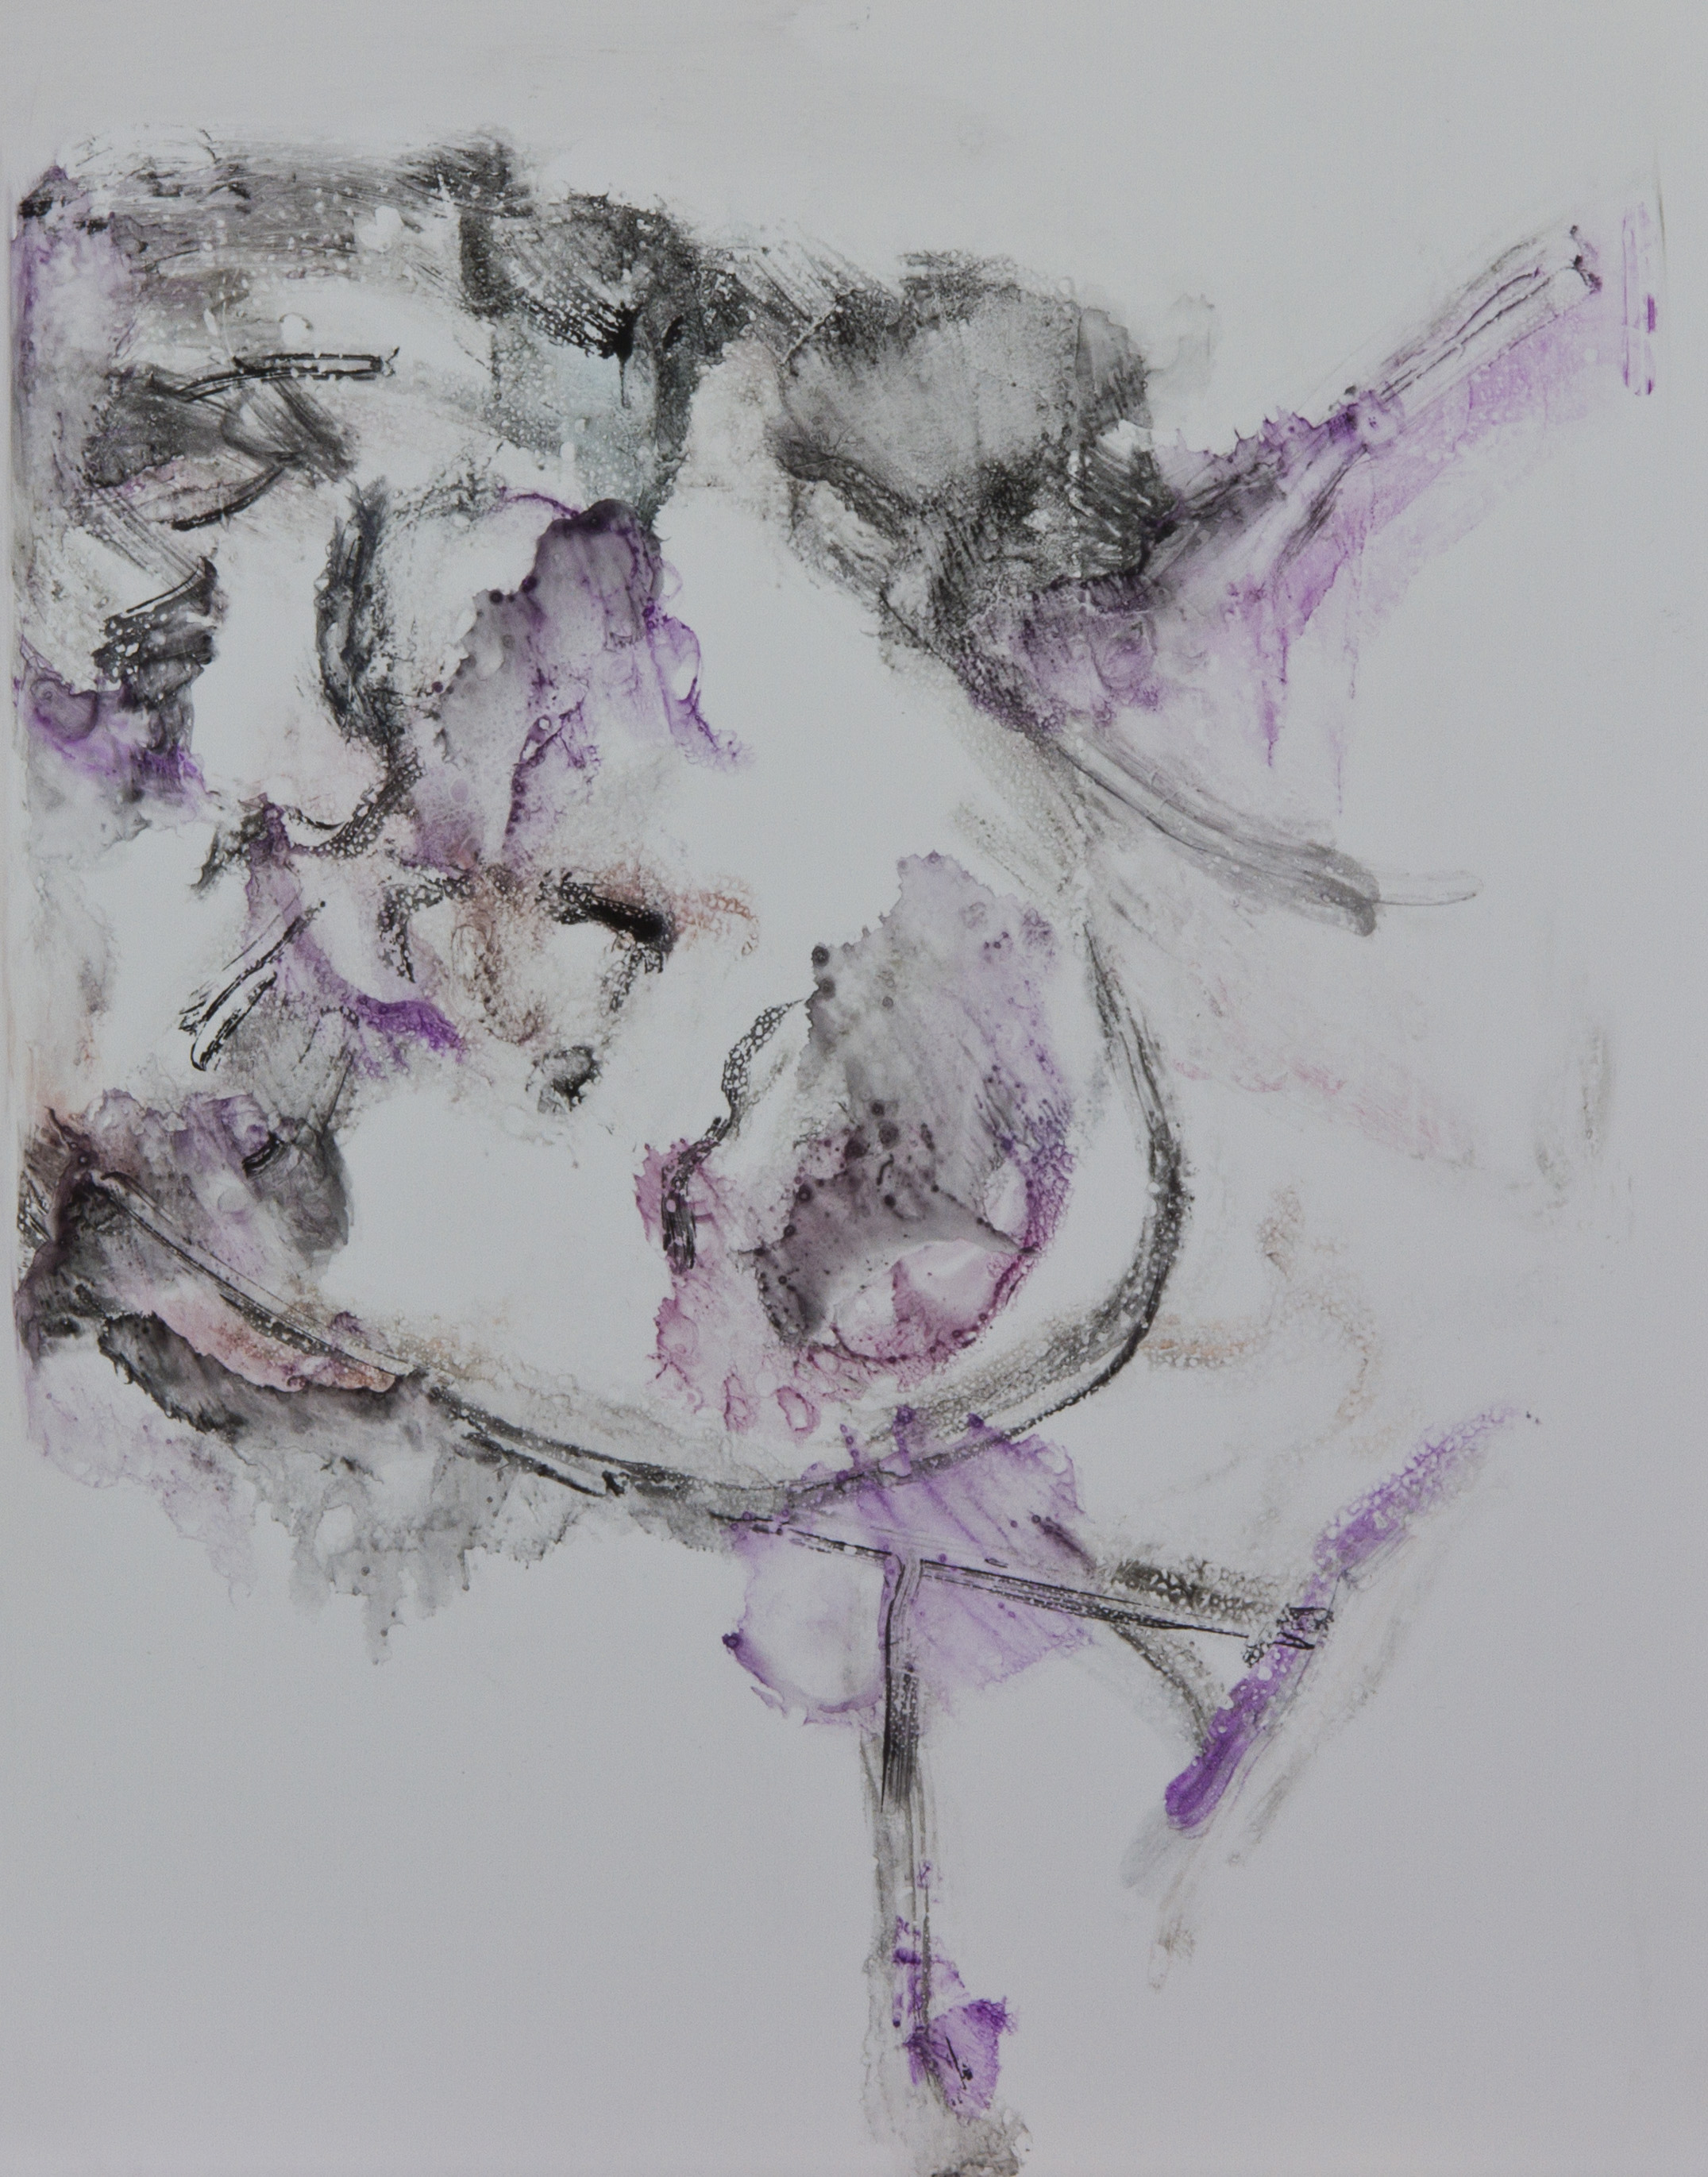 Acts 36, 2010, watercolor monotype on polypropylene, 11x14 inches